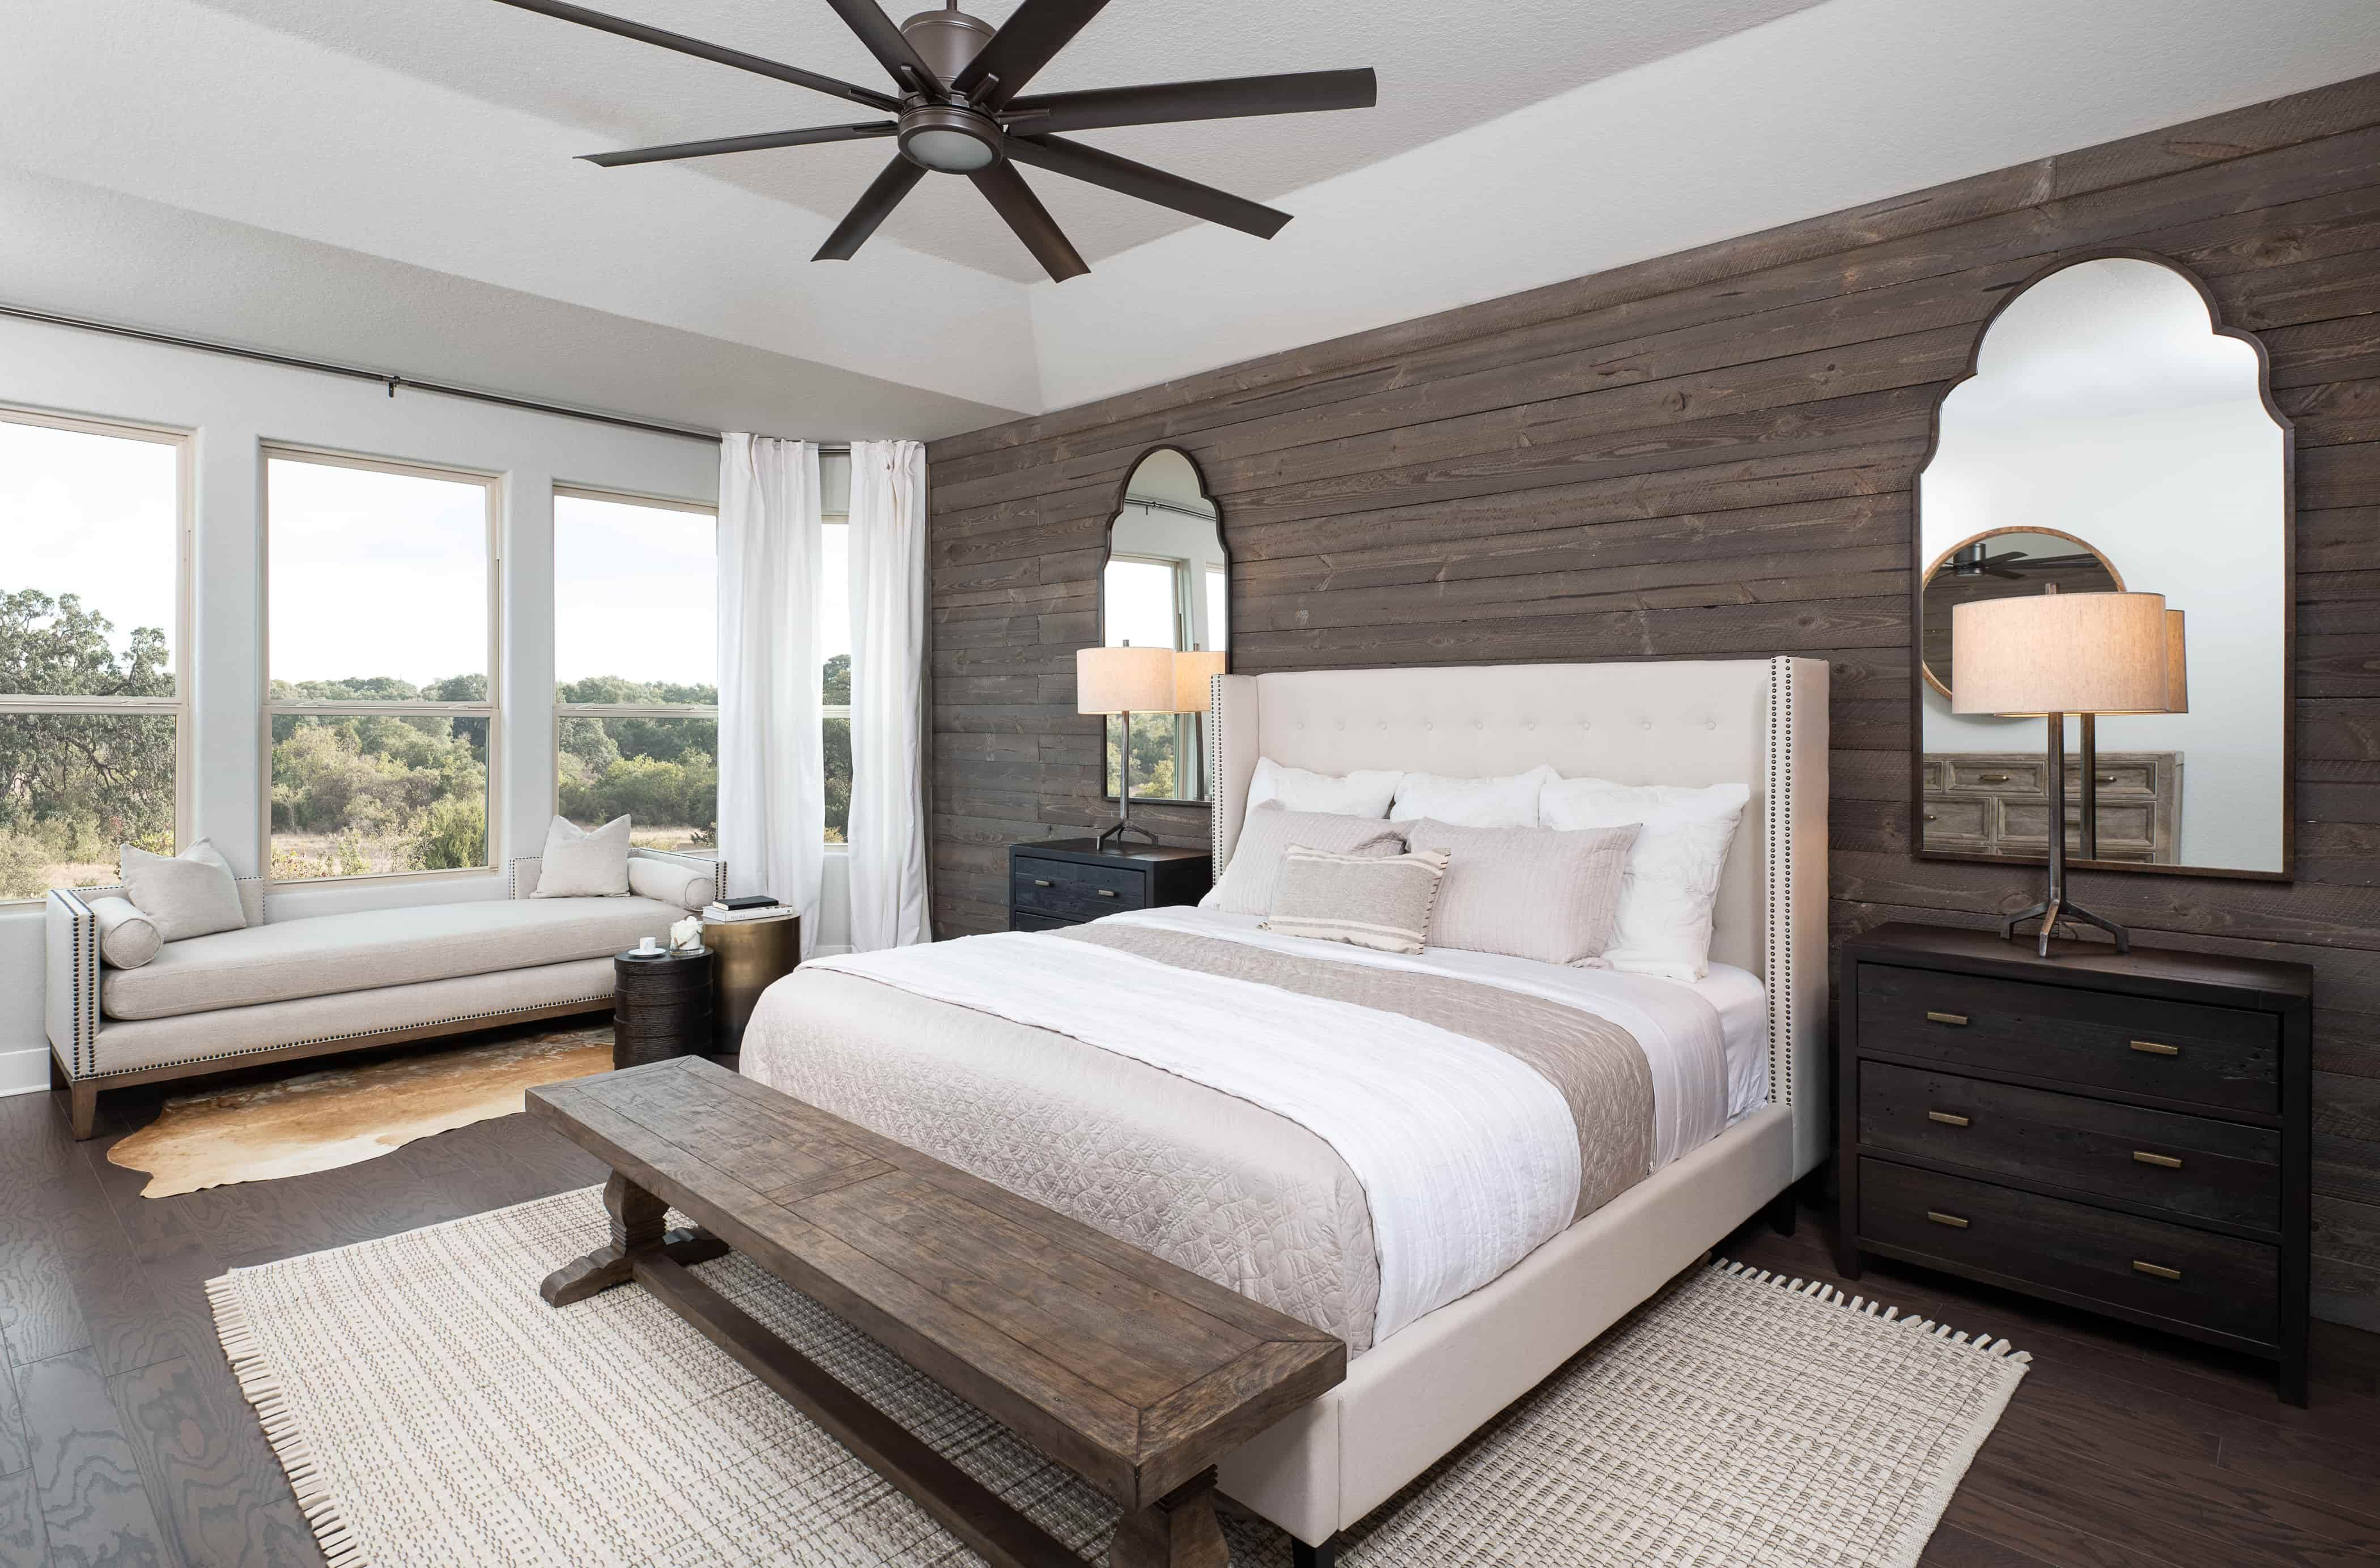 Bedroom featured in the Blake By Ashton Woods in San Antonio, TX